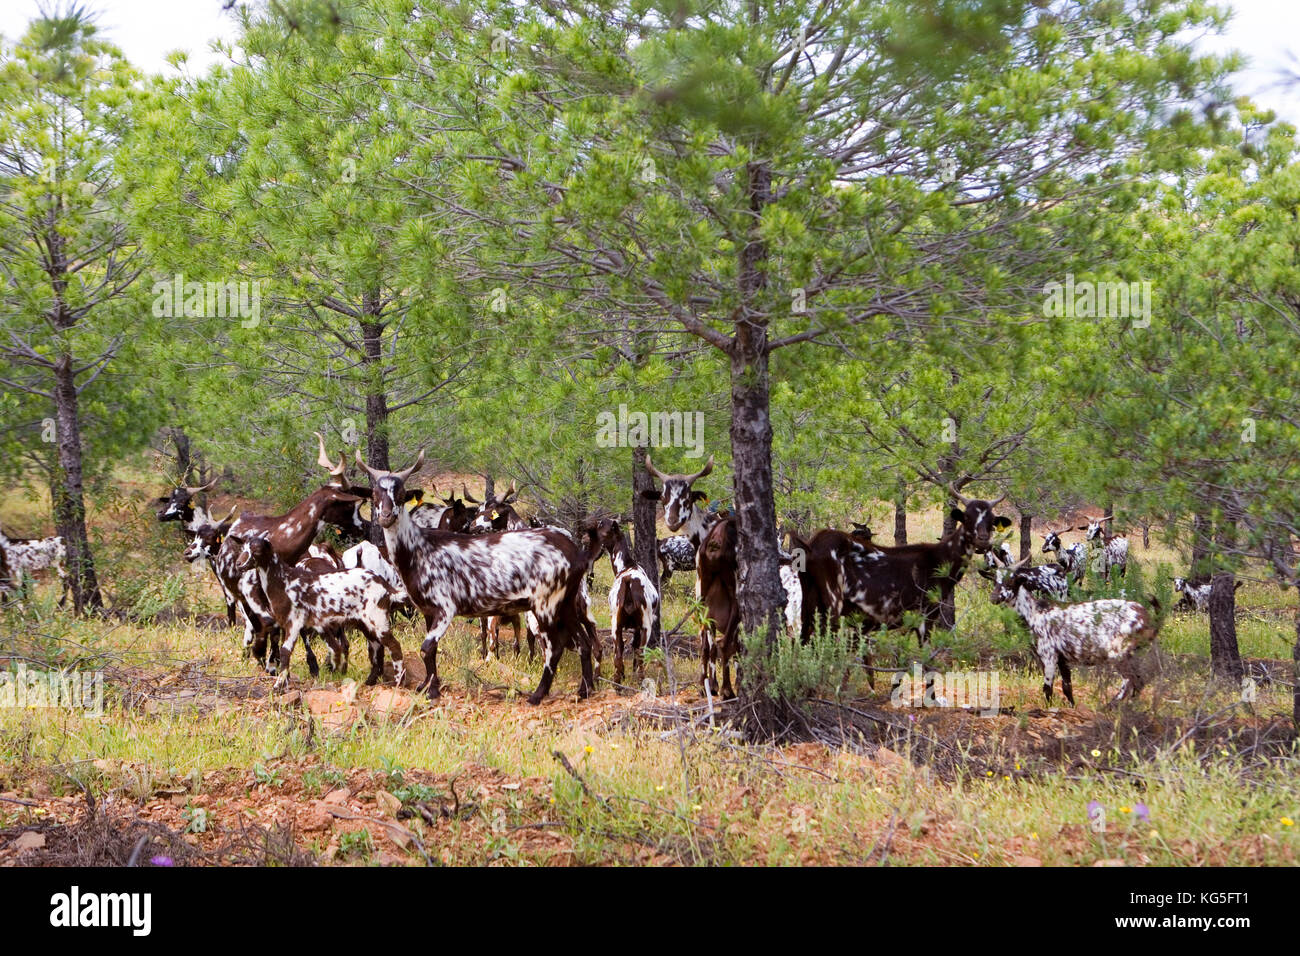 Portugal, travel, Algarve, herd of goats in the pine wood - Stock Image